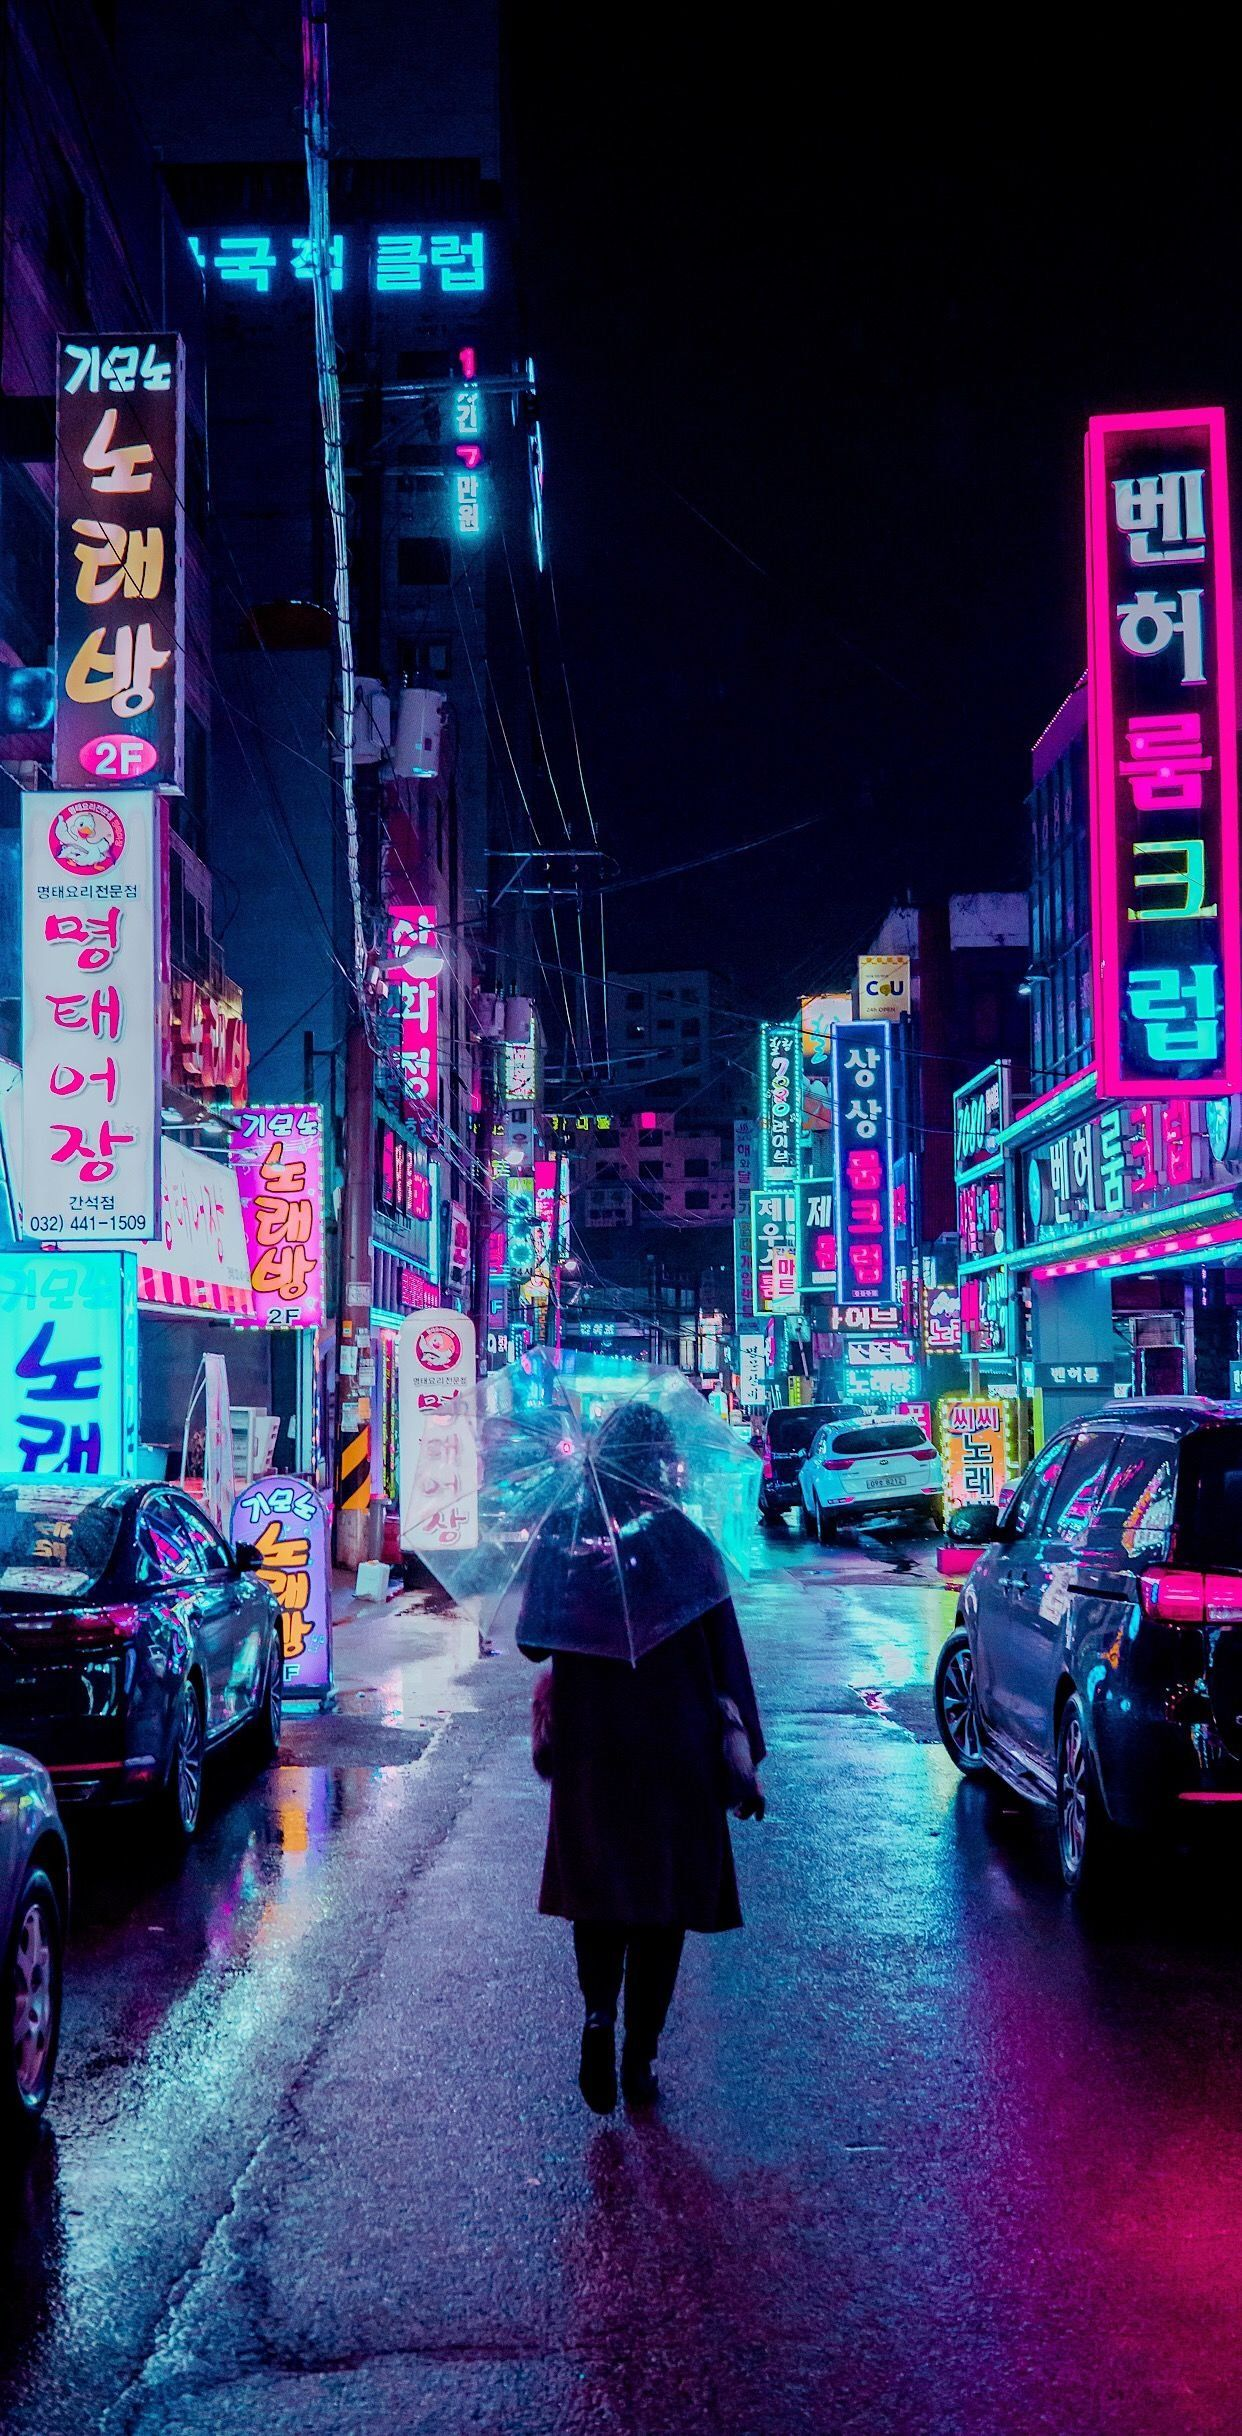 Cyberpunk Neon Android Wallpapers - Wallpaper Cave